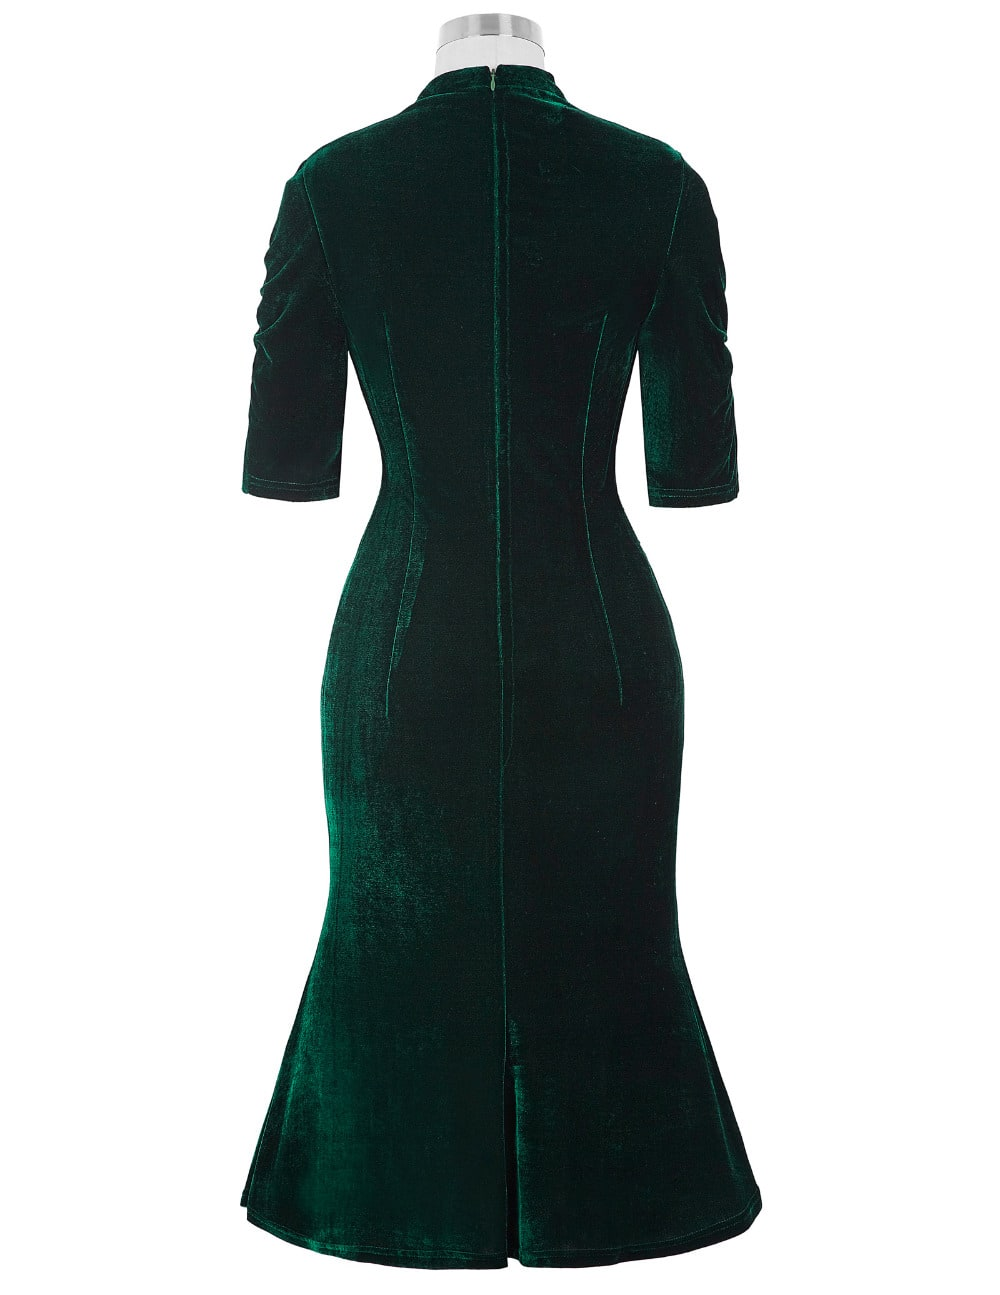 shanghai-lilly-emerald-velvet-vintage-dress-back